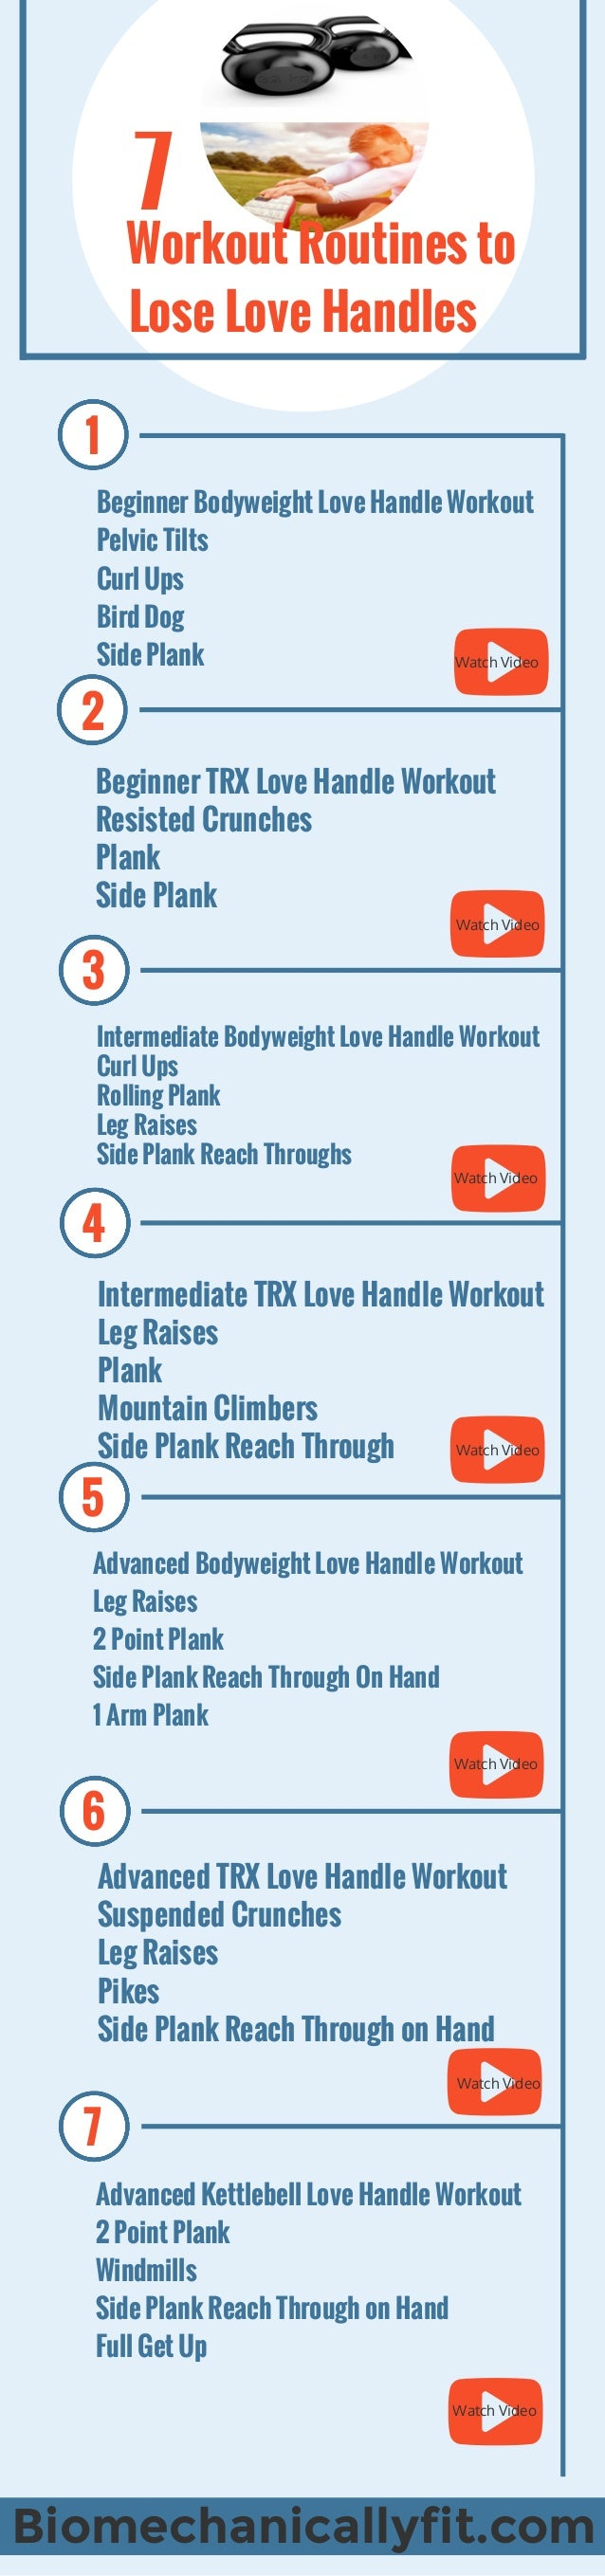 7 workout routines to lose those love handles rh slideshare net TRX Full Body Workout Routines TRX Workouts for Women